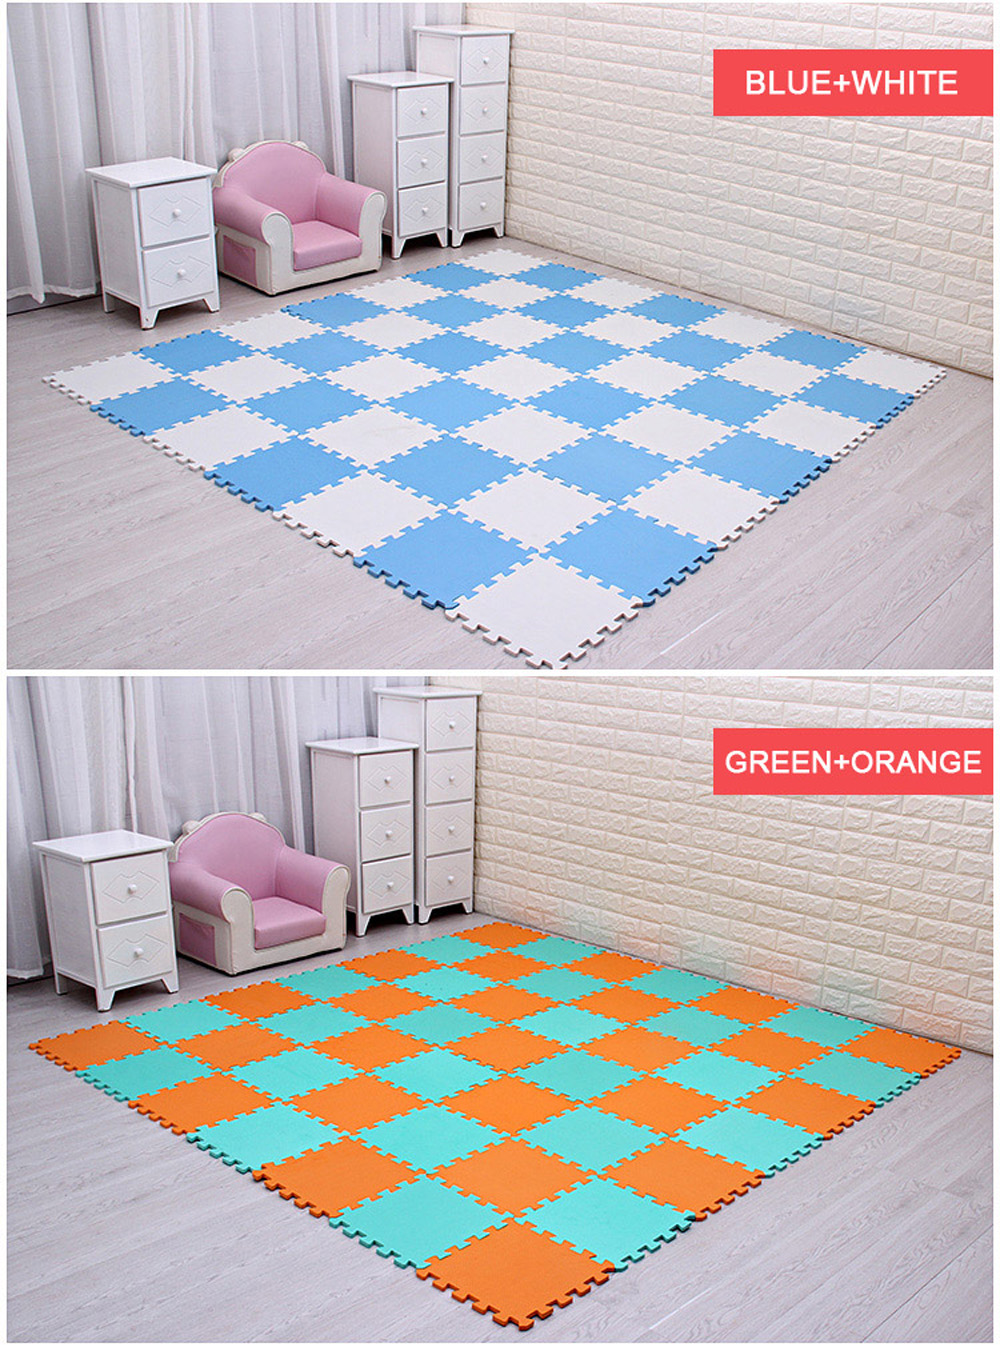 HTB1V7fOrQ9WBuNjSspeq6yz5VXaJ Newest 9/18pcs/set EVA Children's Foam Carpet Mosaic floor Puzzle Carpet Baby Play Mat Floor Developing Crawling Rugs Puzzle Mat